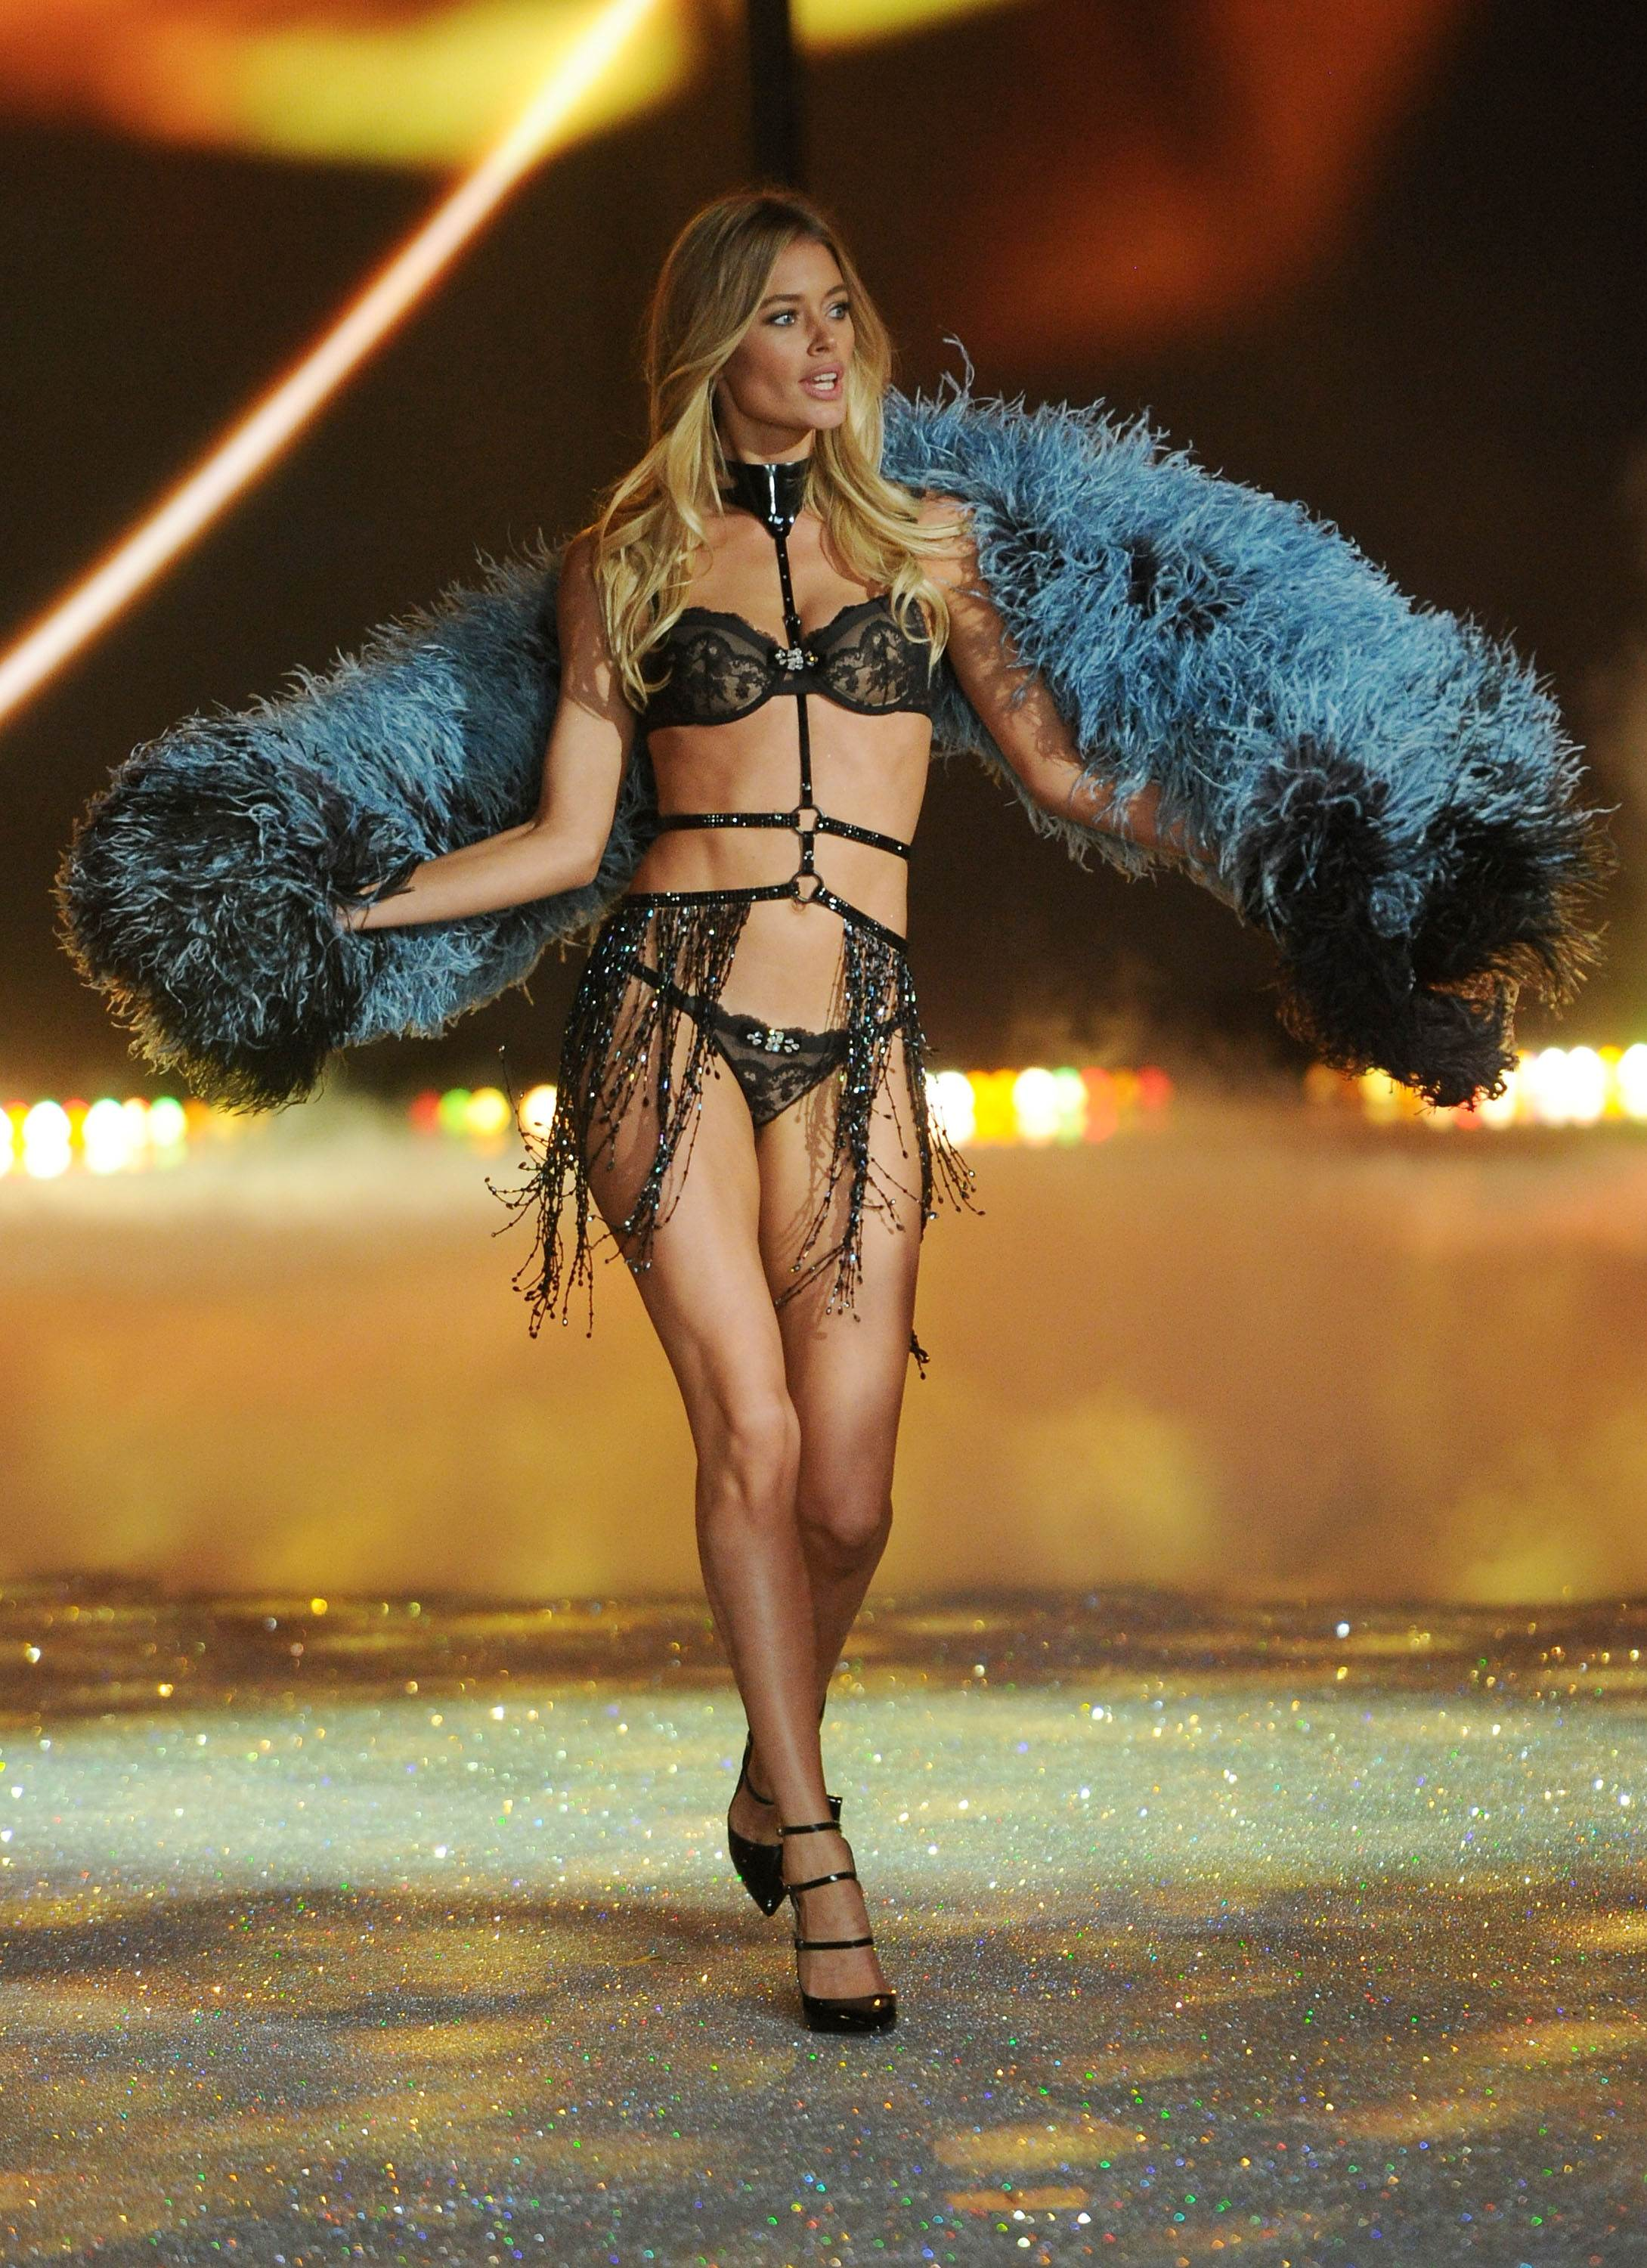 db7ad99e5d Doutzen Kroes – Victorias Secret Fashion Show Runway 2013 -08 – GotCeleb